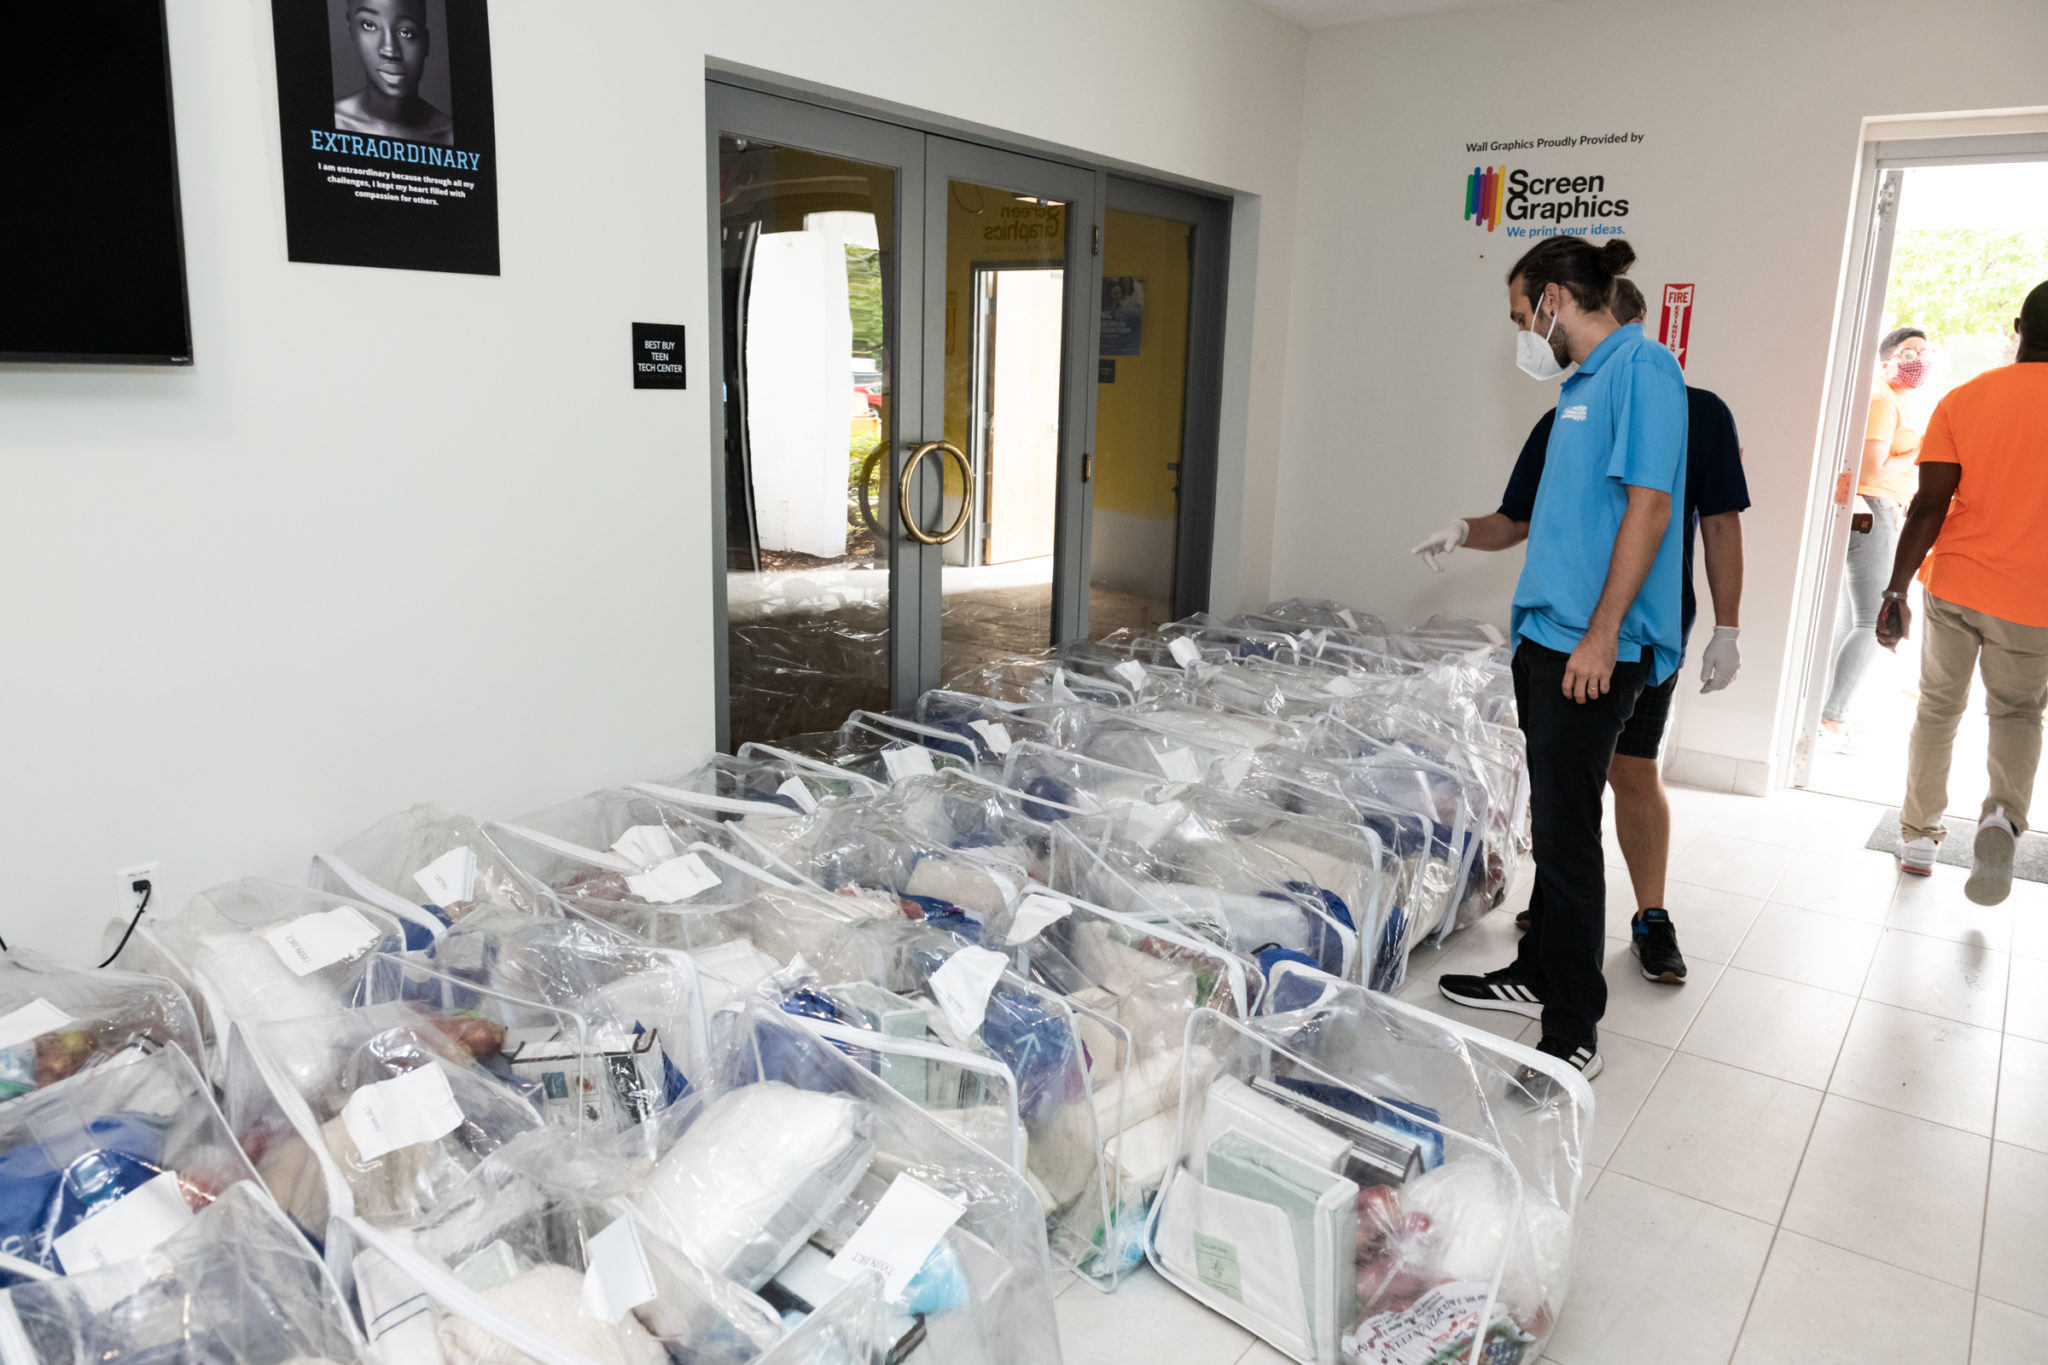 Luxury beds in bag for distribution